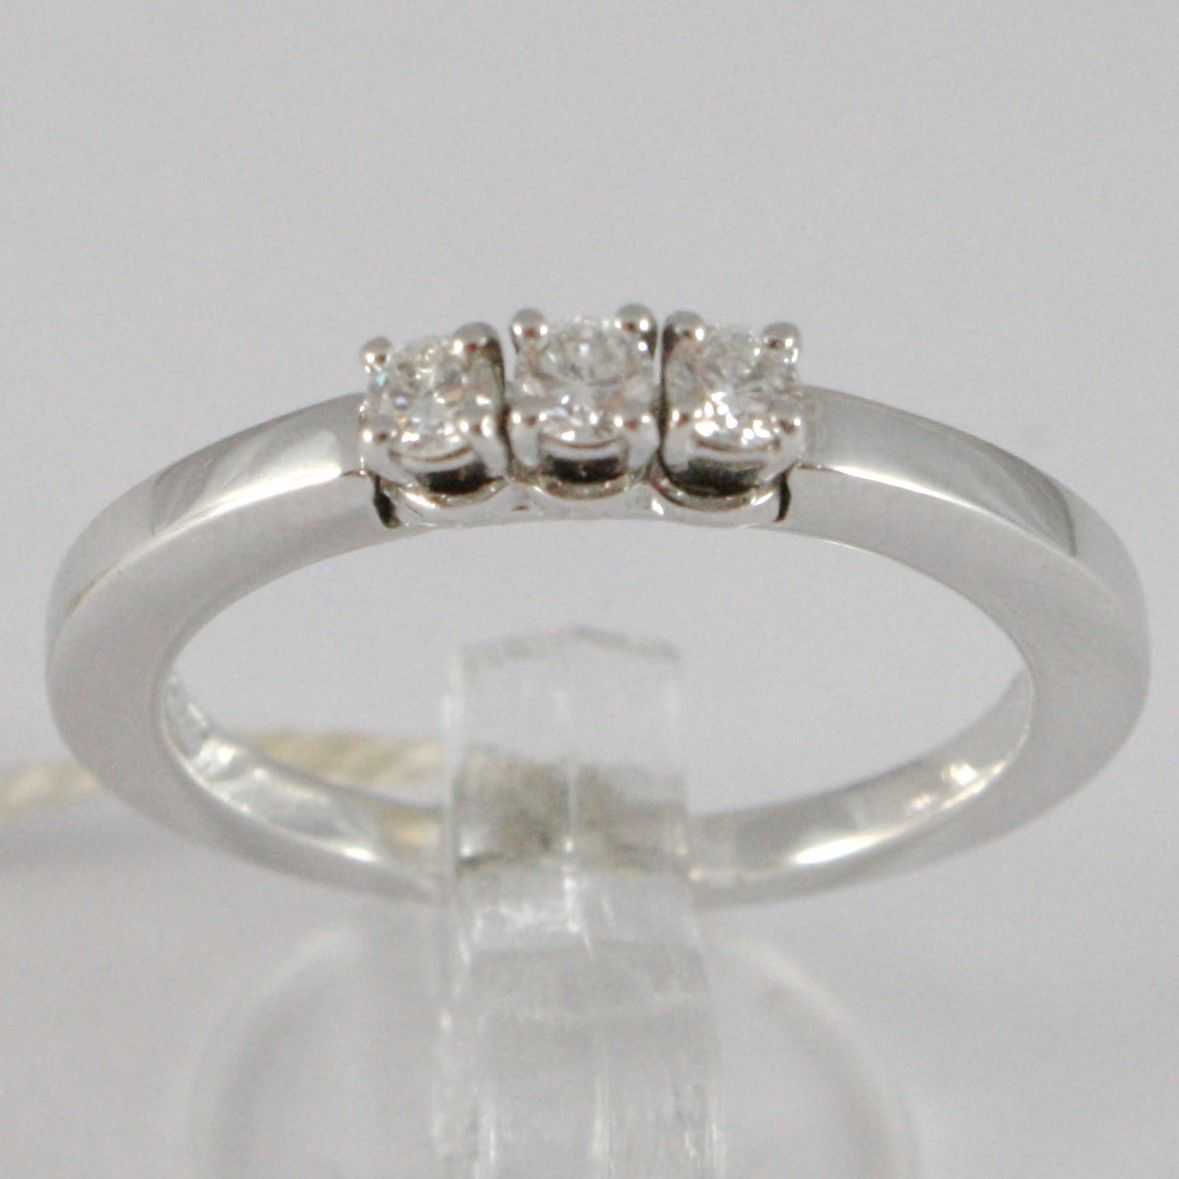 ANILLO DE ORO BLANCO 750 18 CT,TRILOGY 3 DIAMANTES QUILATES TOTAL 0.18,VÁSTAGO